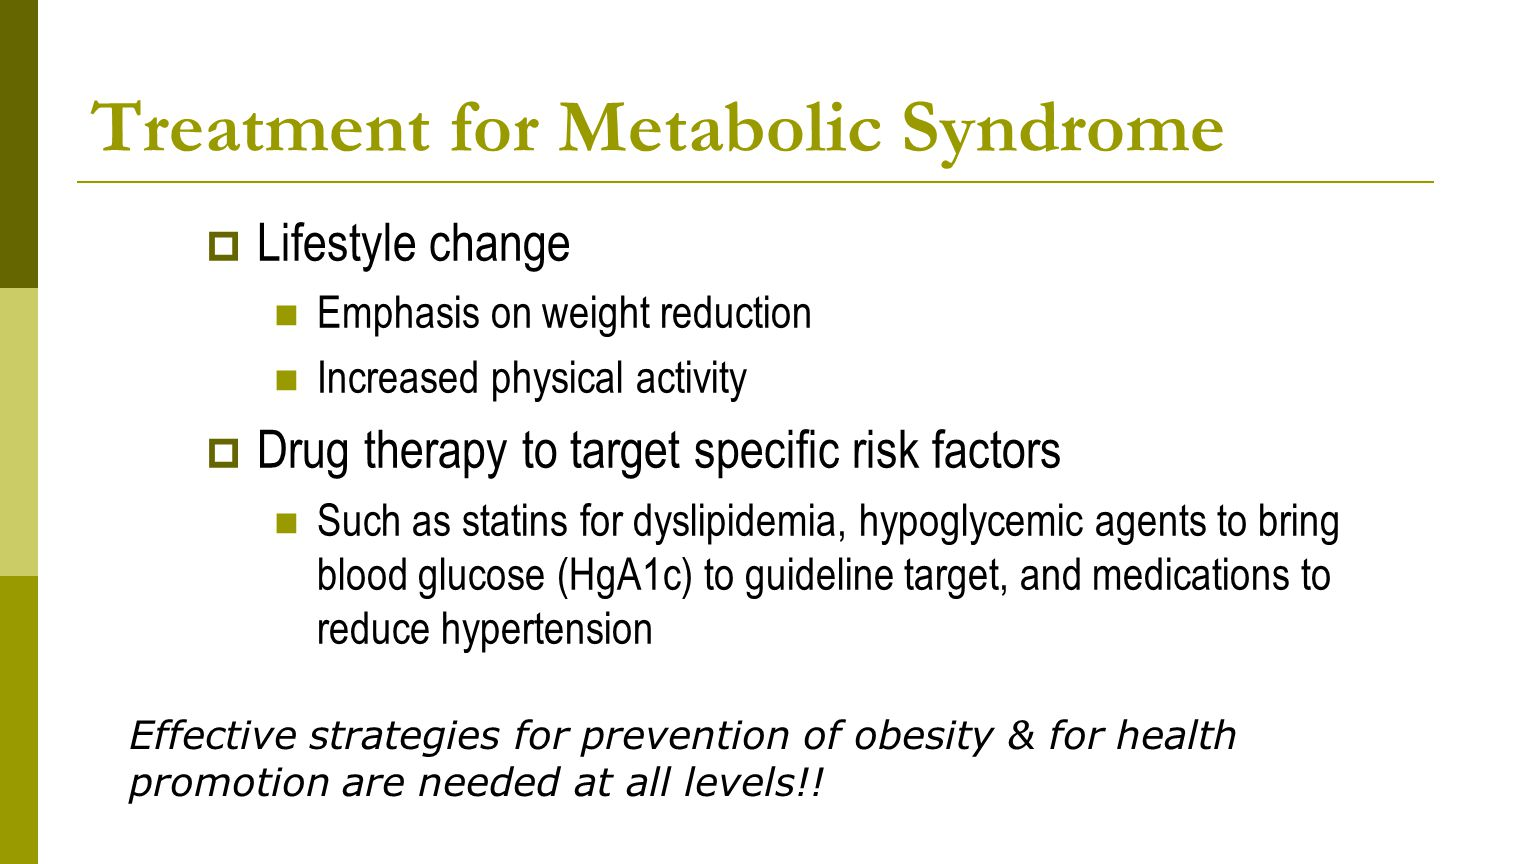 Treatment for Metabolic Syndrome  Lifestyle change Emphasis on weight reduction Increased physical activity  Drug therapy to target specific risk factors Such as statins for dyslipidemia, hypoglycemic agents to bring blood glucose (HgA1c) to guideline target, and medications to reduce hypertension Effective strategies for prevention of obesity & for health promotion are needed at all levels!!